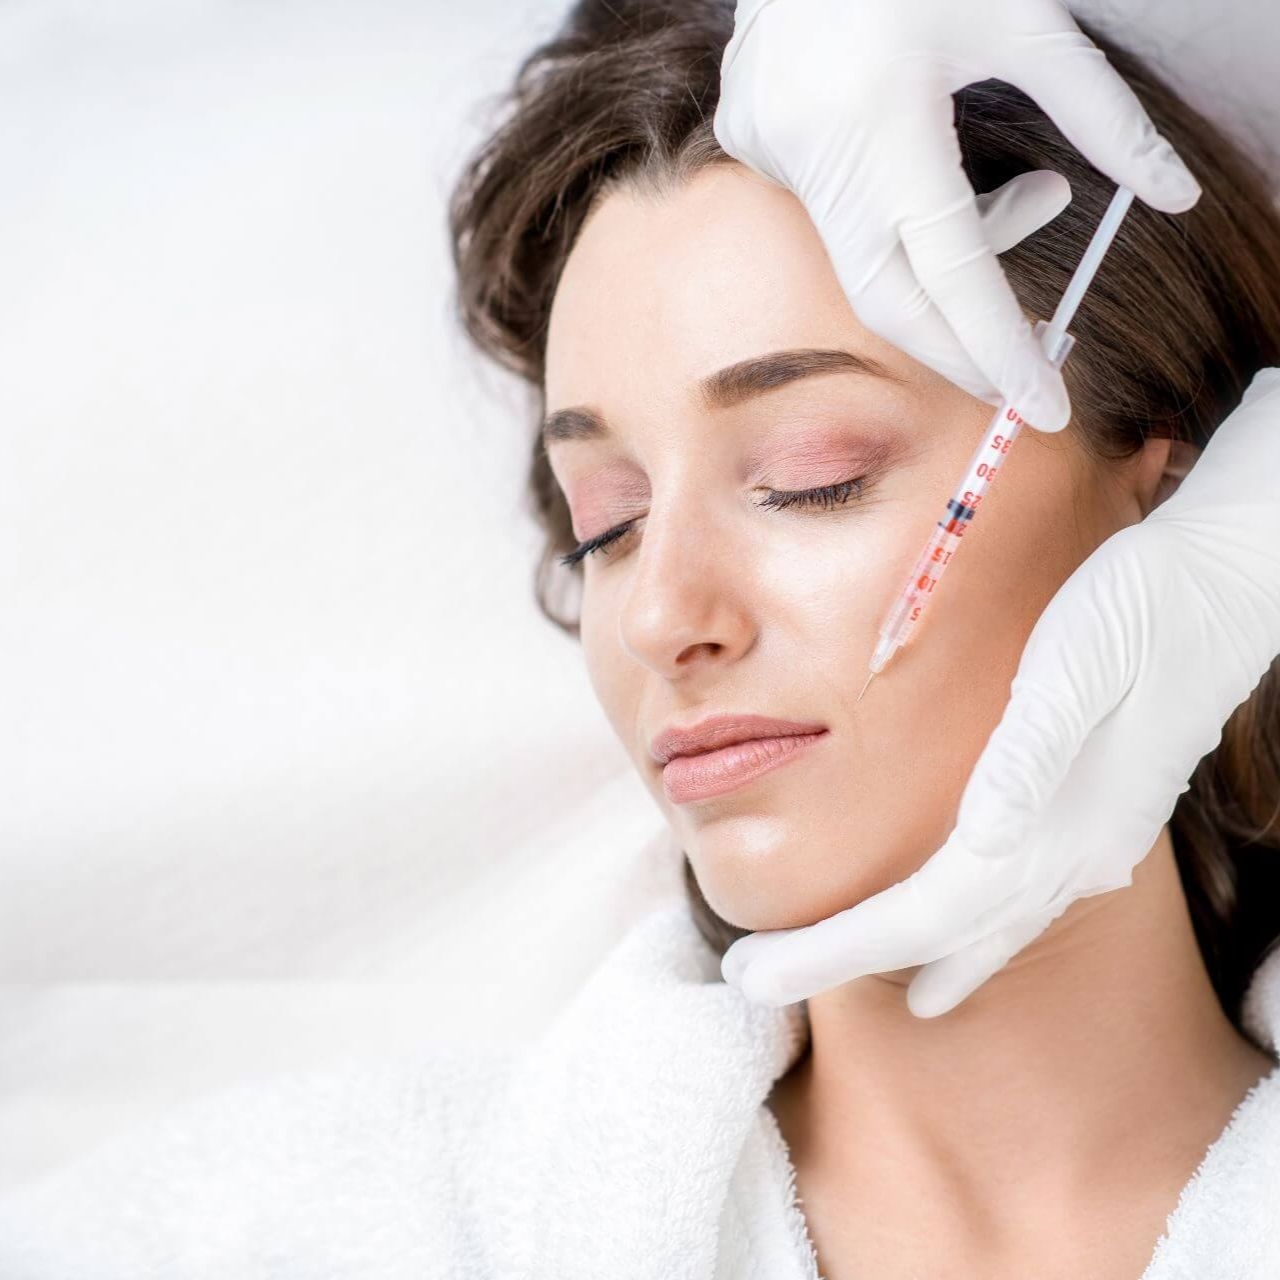 Cosmetic Dermatology - Dermo Aesthetic Surgery